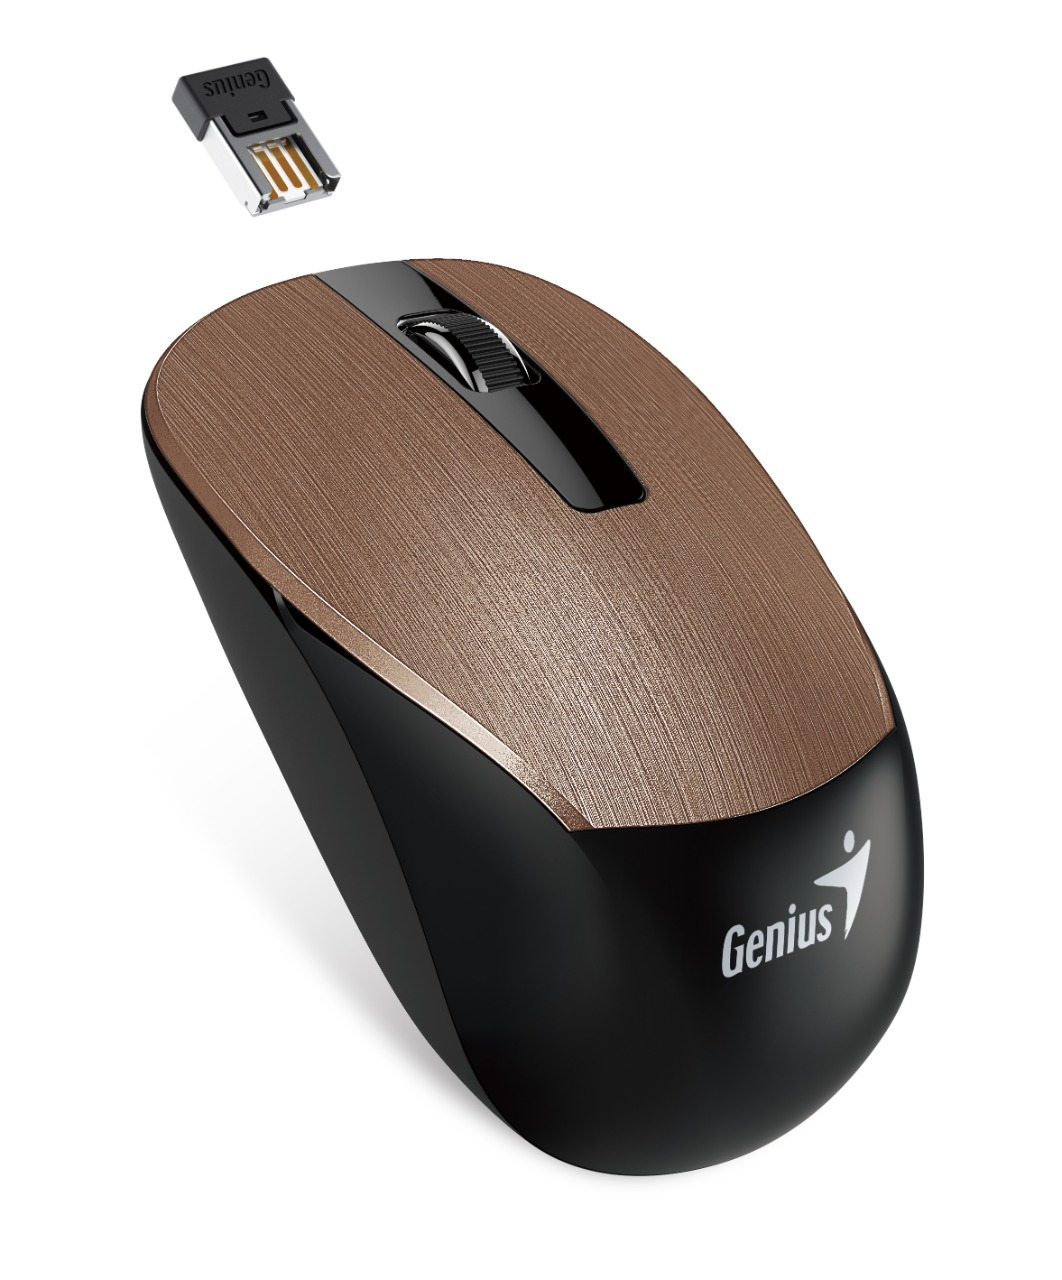 WHOLESALE MOUSE : NX-7015, BLUEEYE / UNIFIED RECEIVER,HAIRLINE DESIGN 1600 DPI BROWN_3